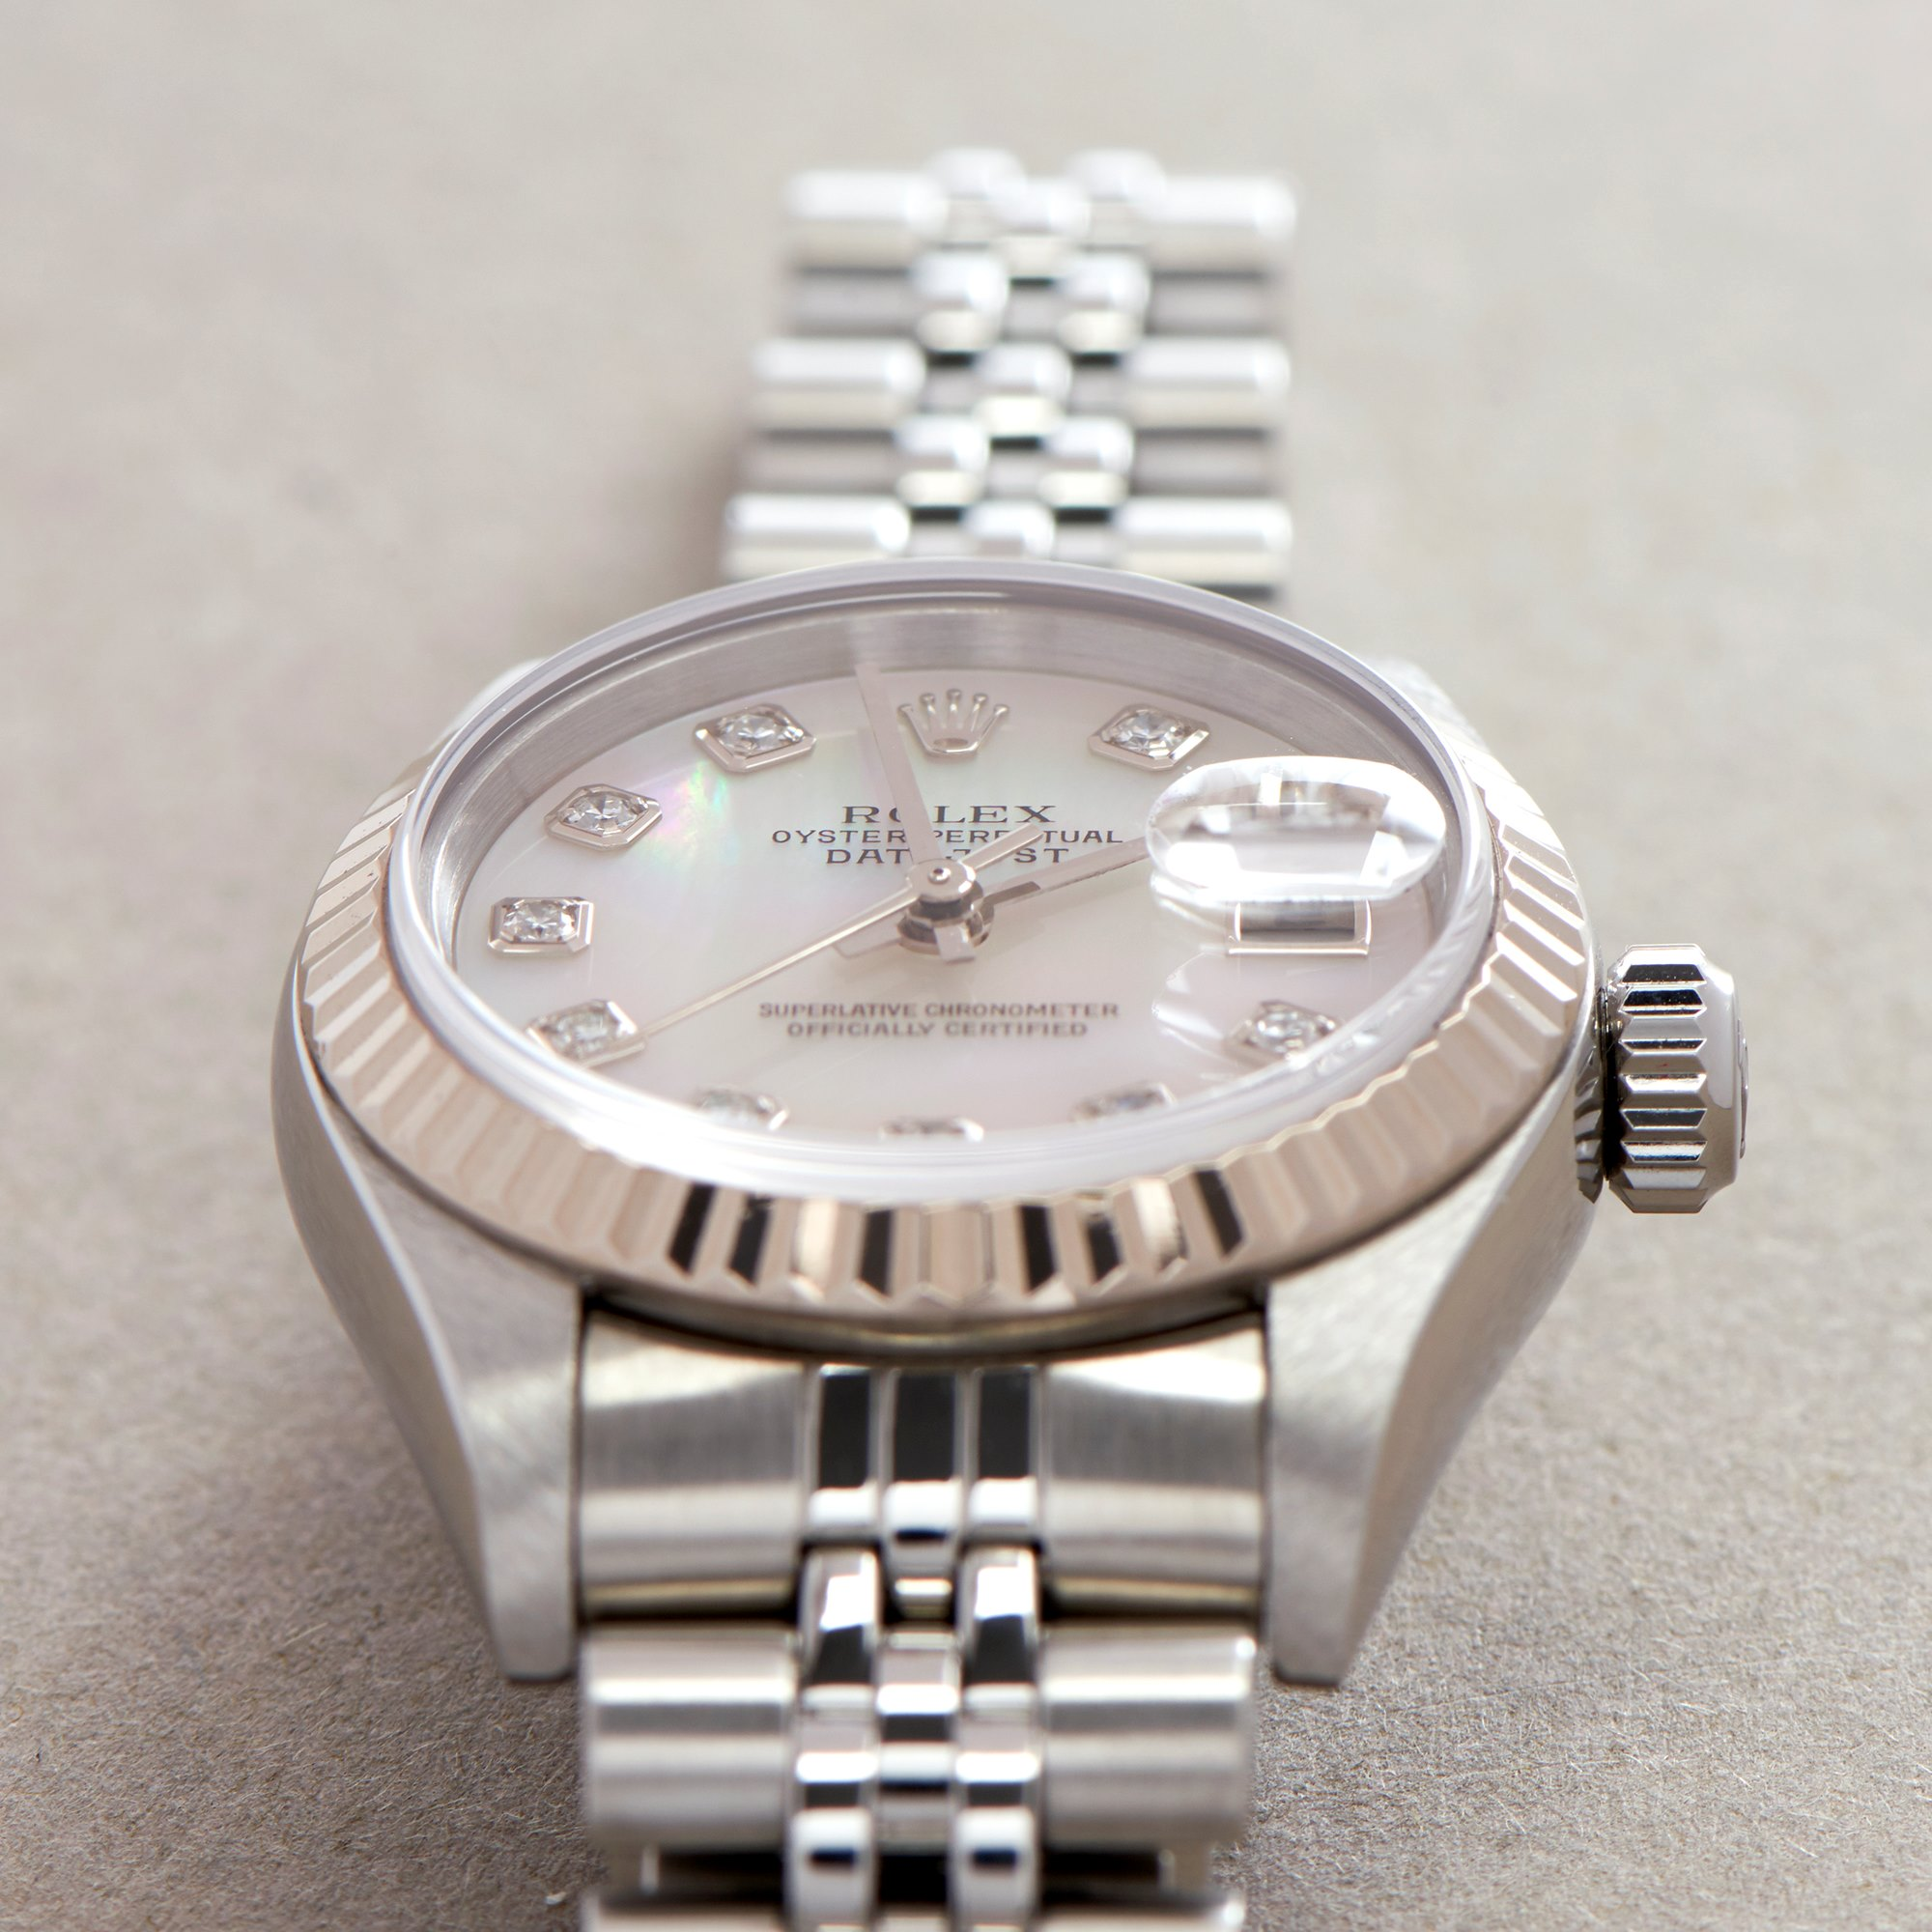 Rolex Datejust 26 18K White Gold & Stainless Steel 79174NG